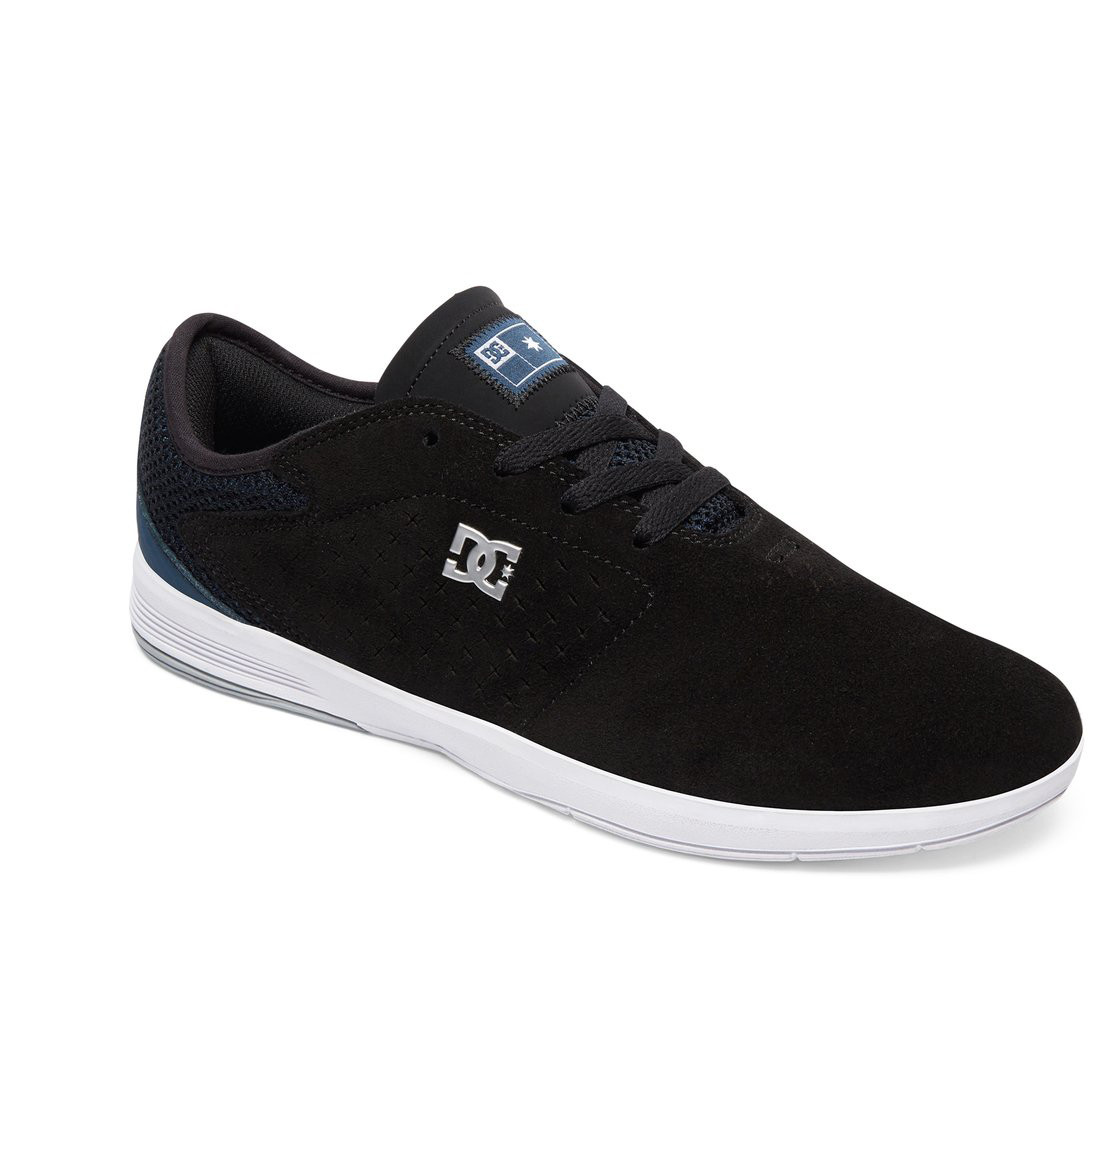 half price choose latest color brilliancy DC Shoes New Jack S Deep Water